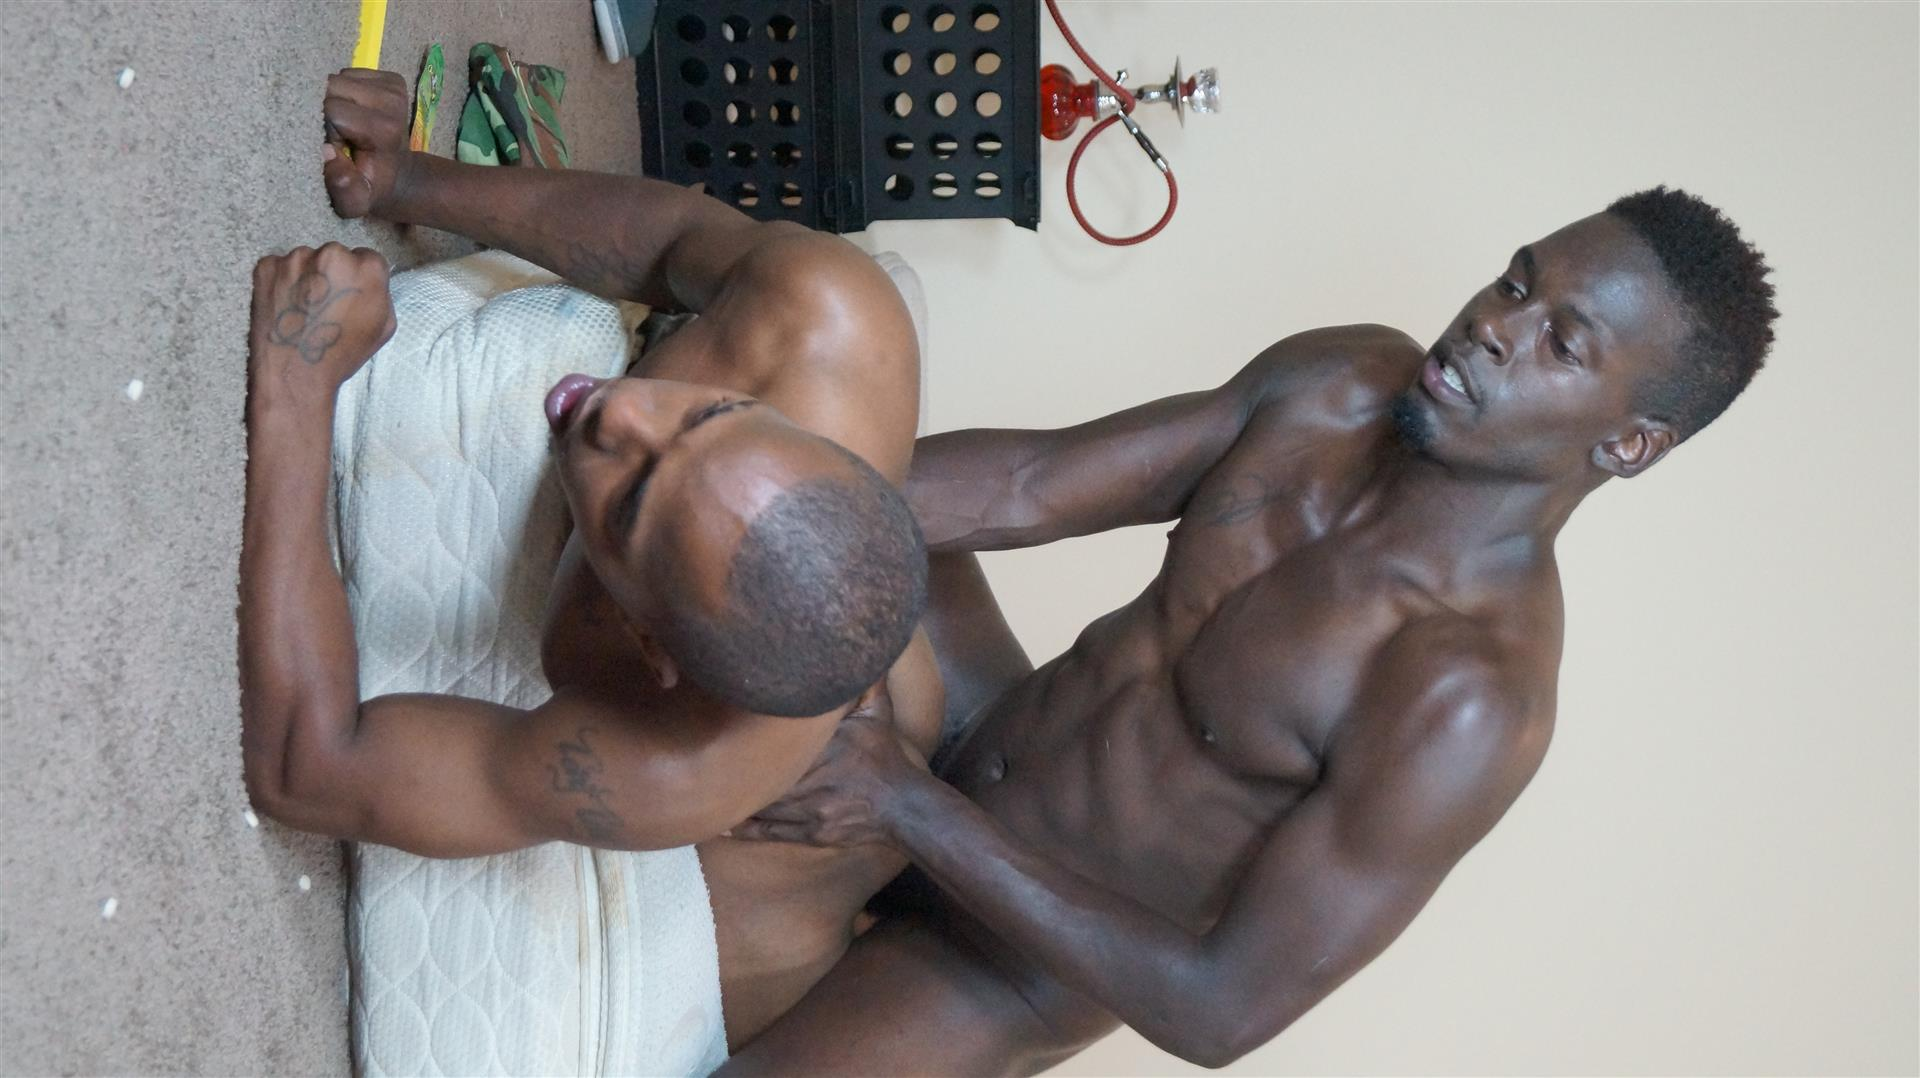 Trap House Boys Ozzy and Dagger Bareback Thug Porn Amateur Gay Porn 08 Hardcore Thug Barebacking With A Big Black Uncut Dick